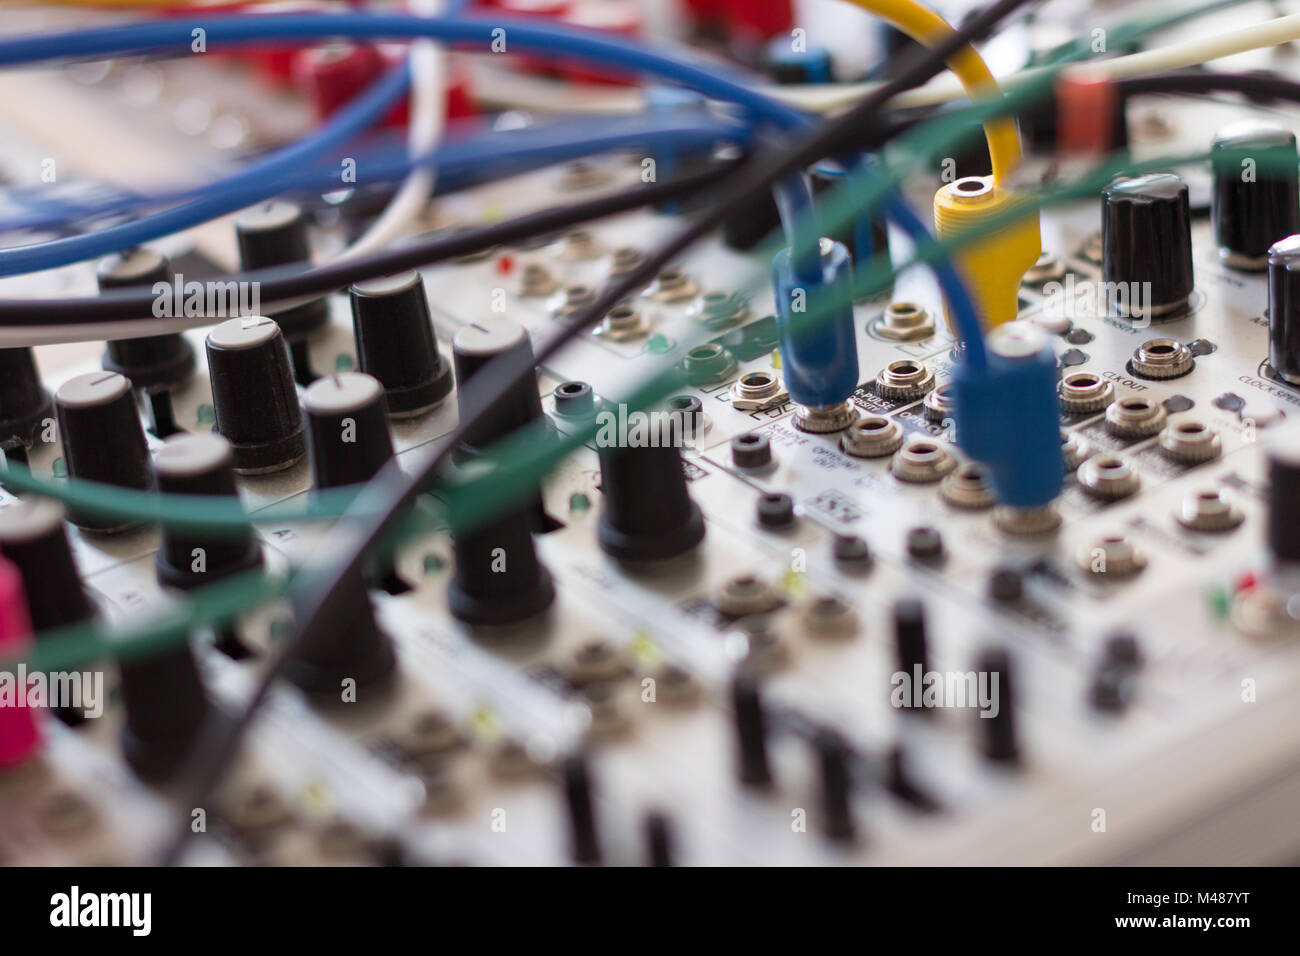 cables and electronic macro, analog synthesizer - Stock Image